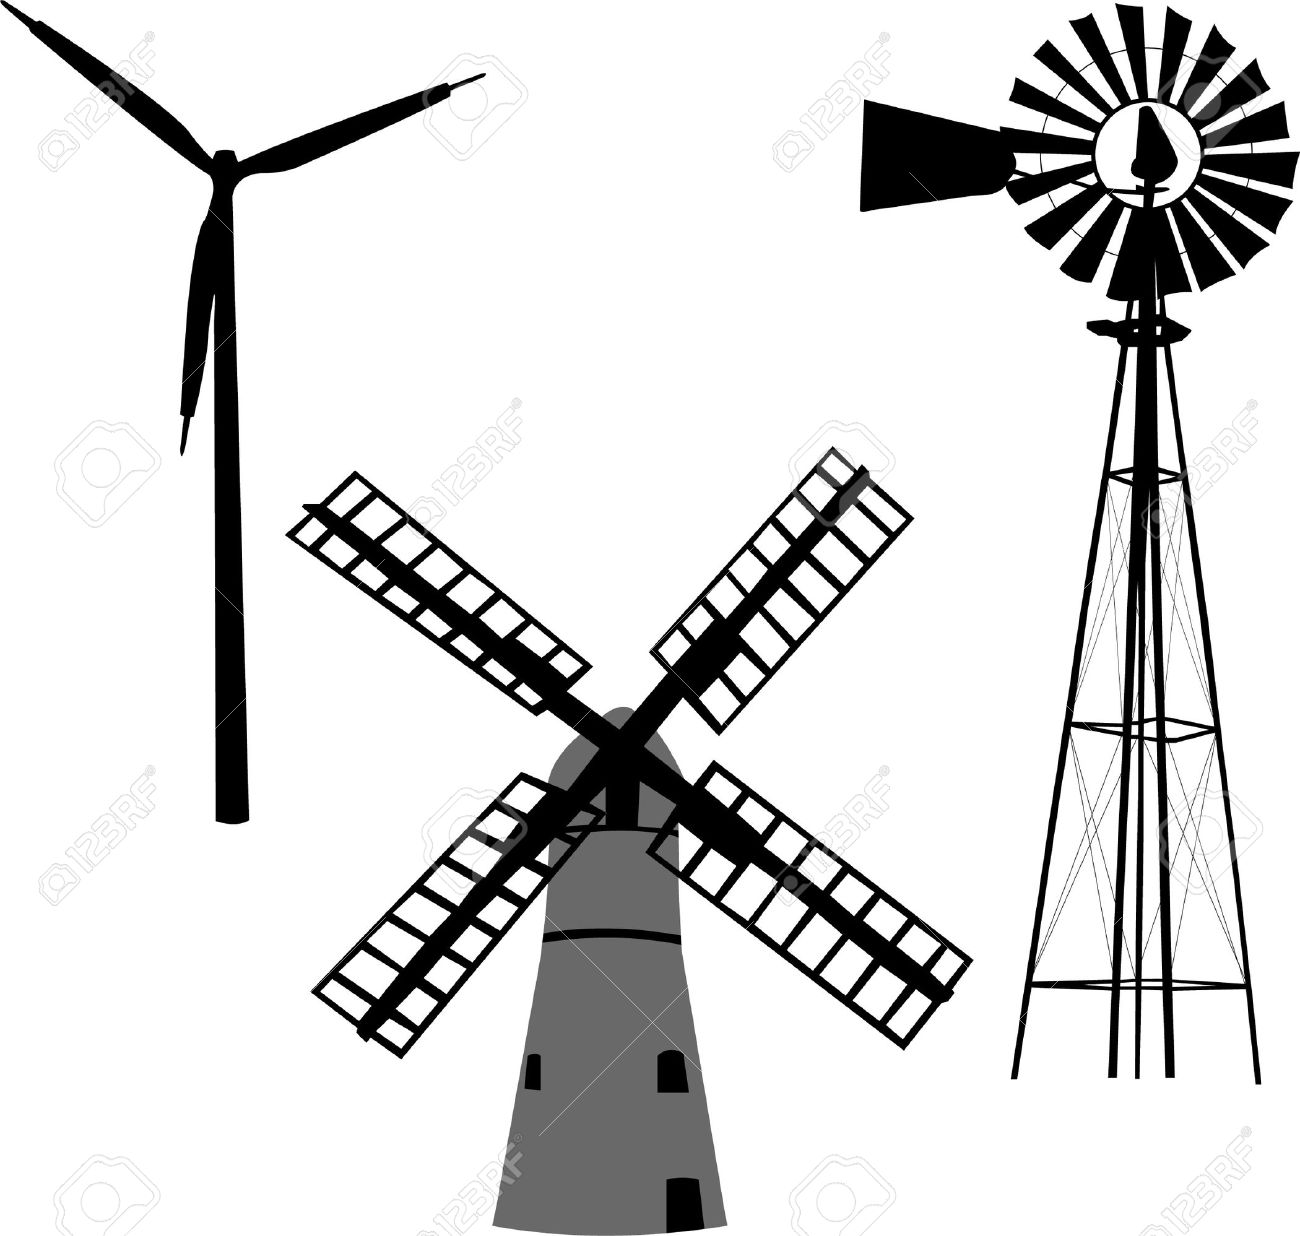 silhouette of windmill.